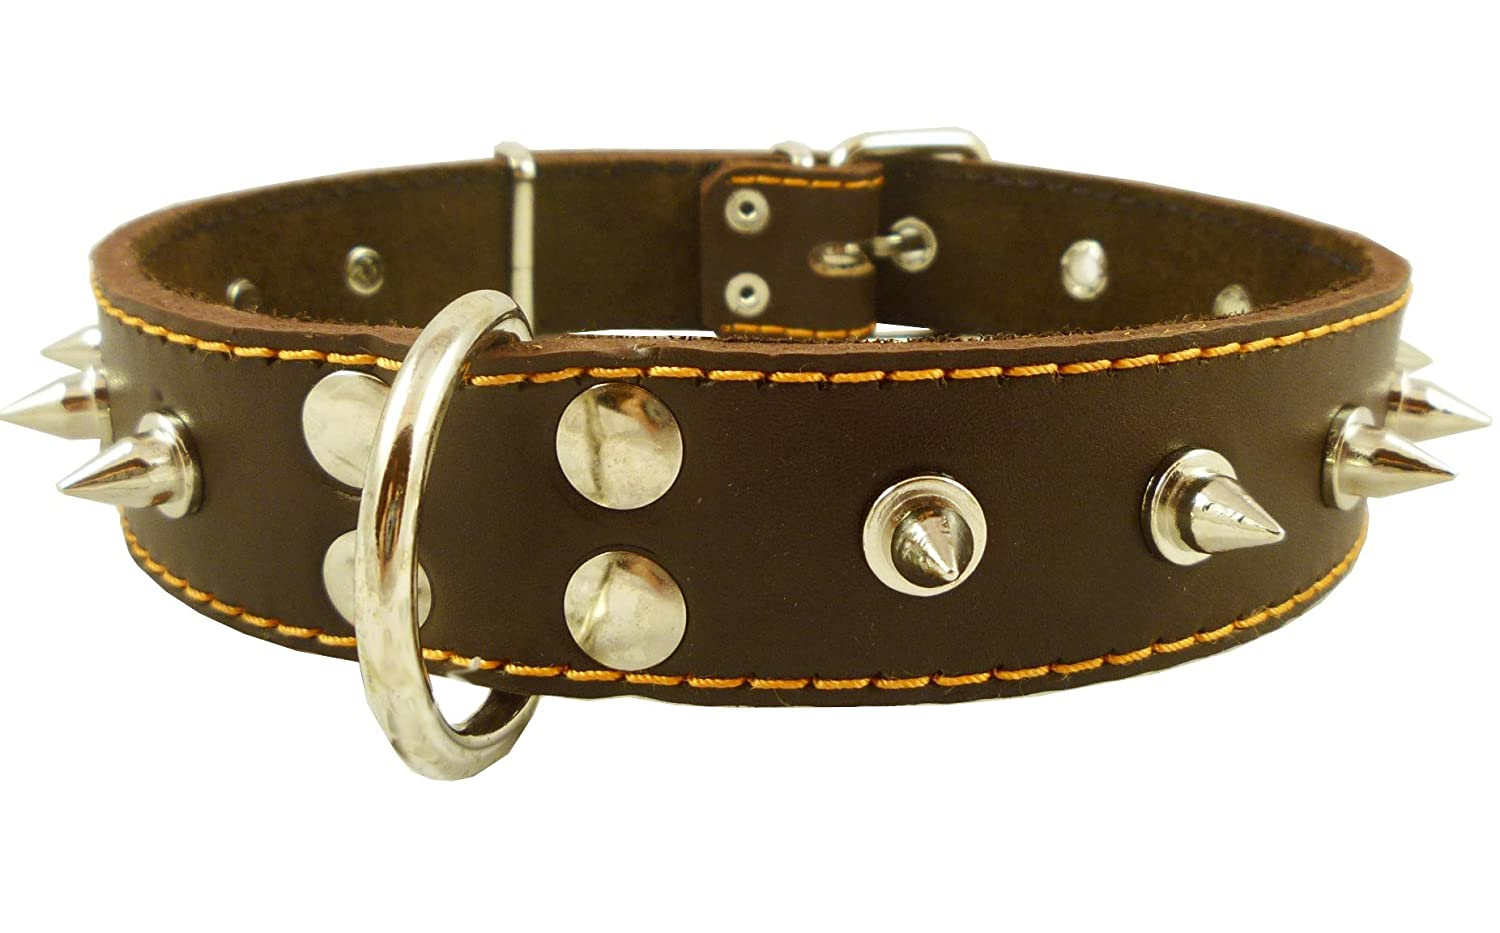 Real Leather Brown Spiked Dog Collar Spikes, 1.5 Wide. Fits 17-21.5 Neck, Large Breeds.